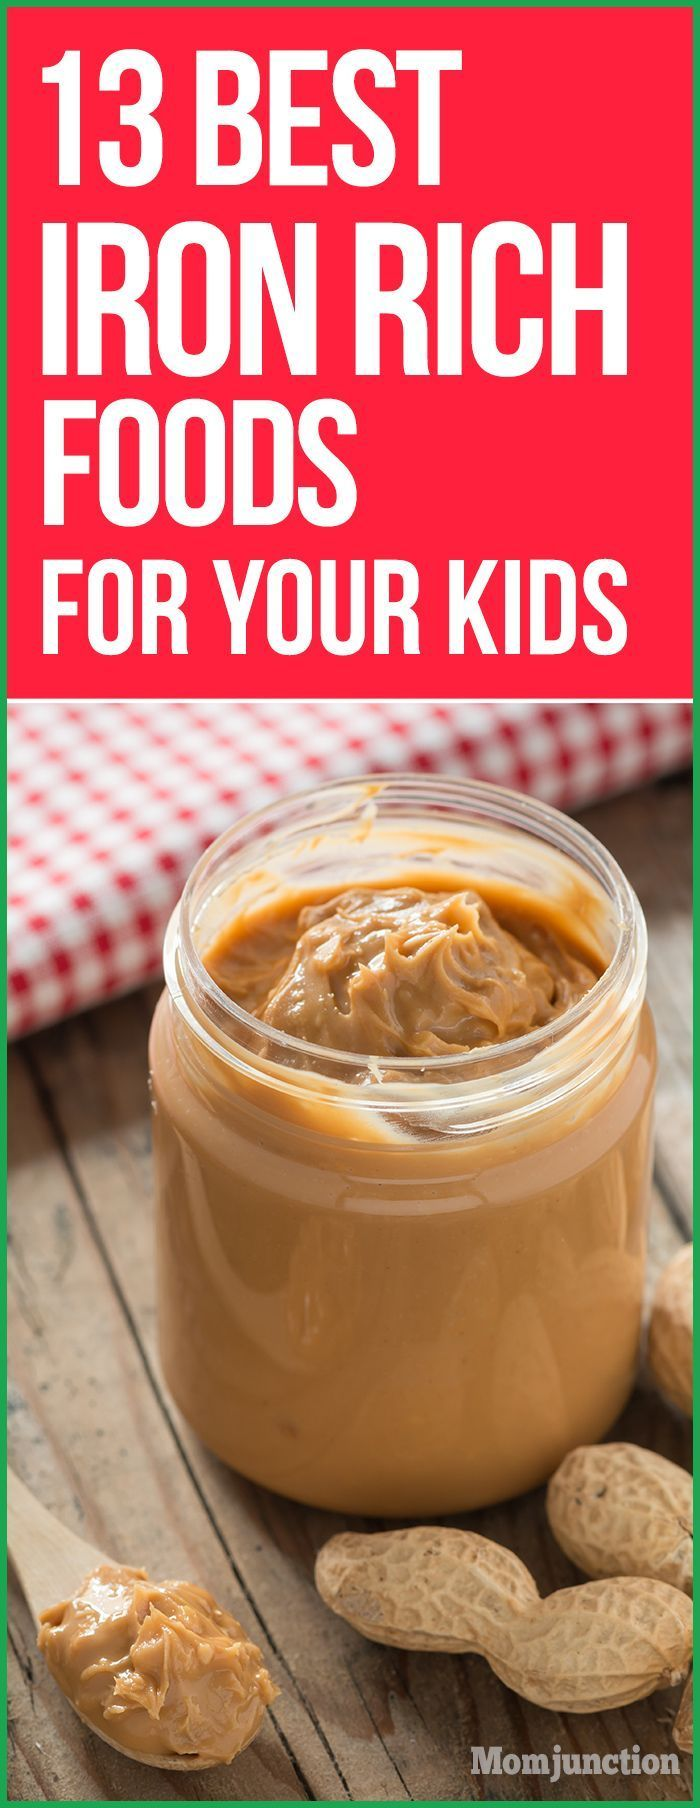 13 Best Iron Rich Foods For Kids